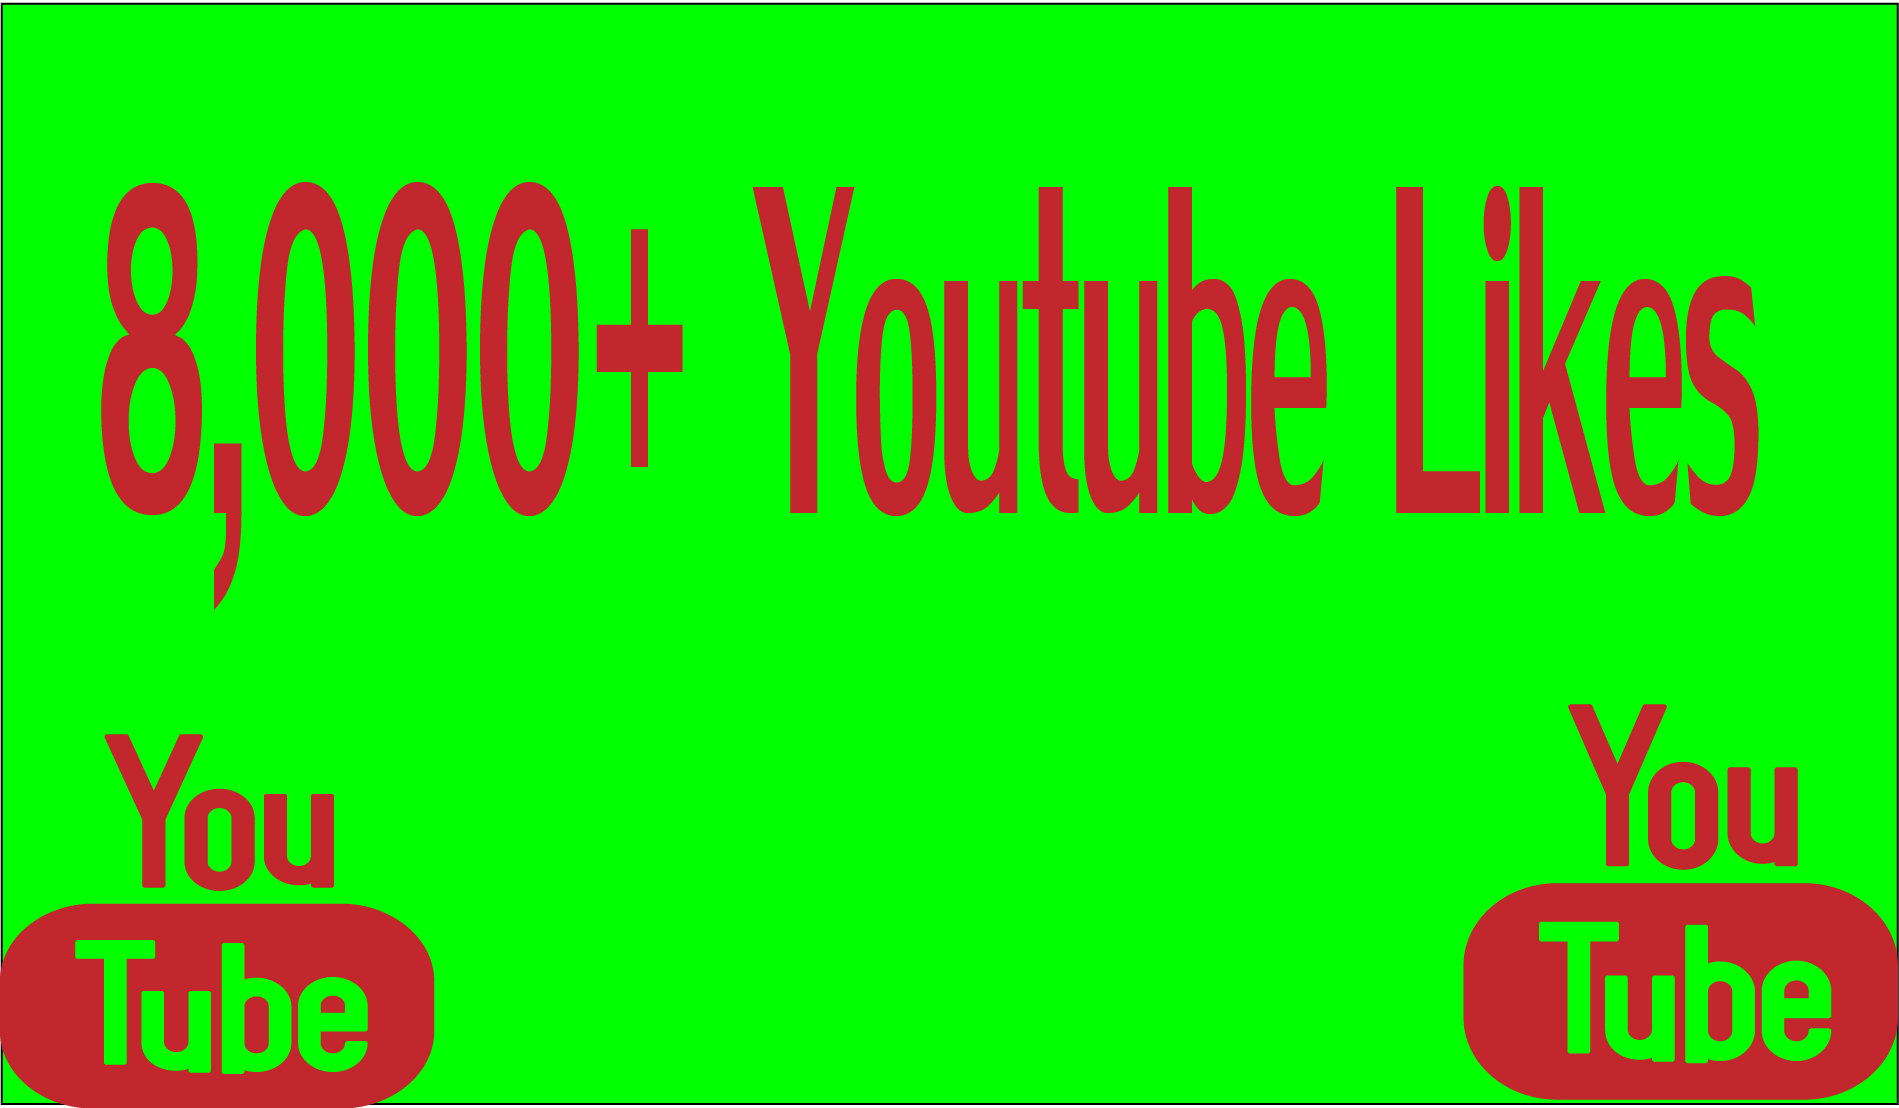 Provide you 8,000 High Quality youtube Likes 100% safely.